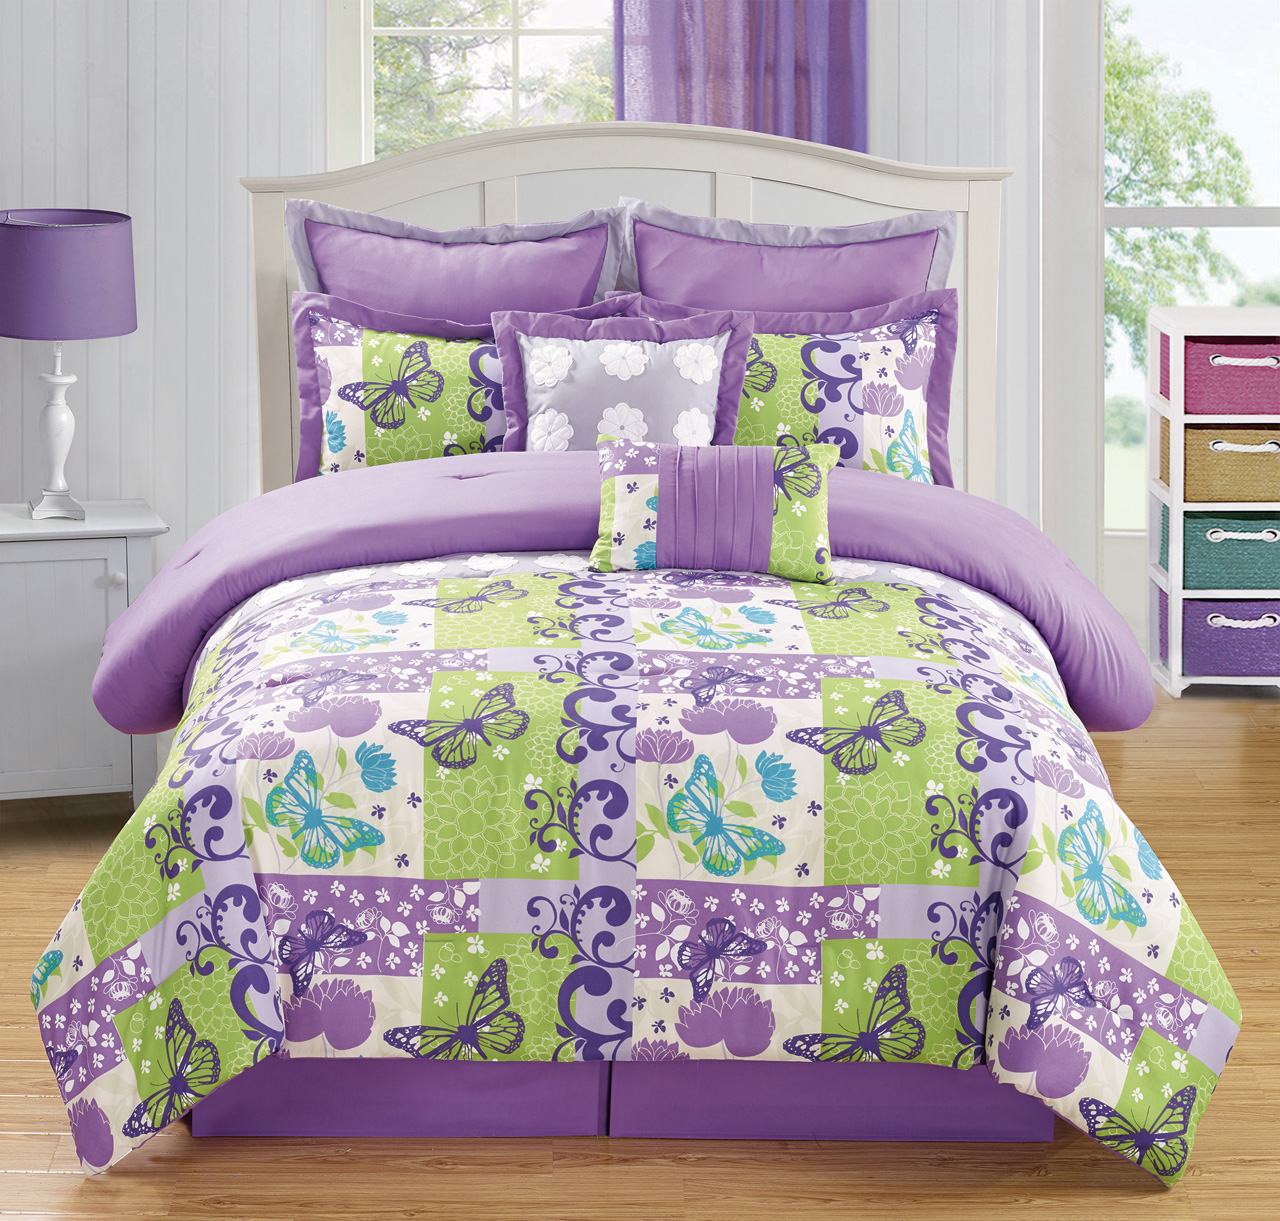 8 piece butterfly purple green comforter set - Green and purple comforter ...